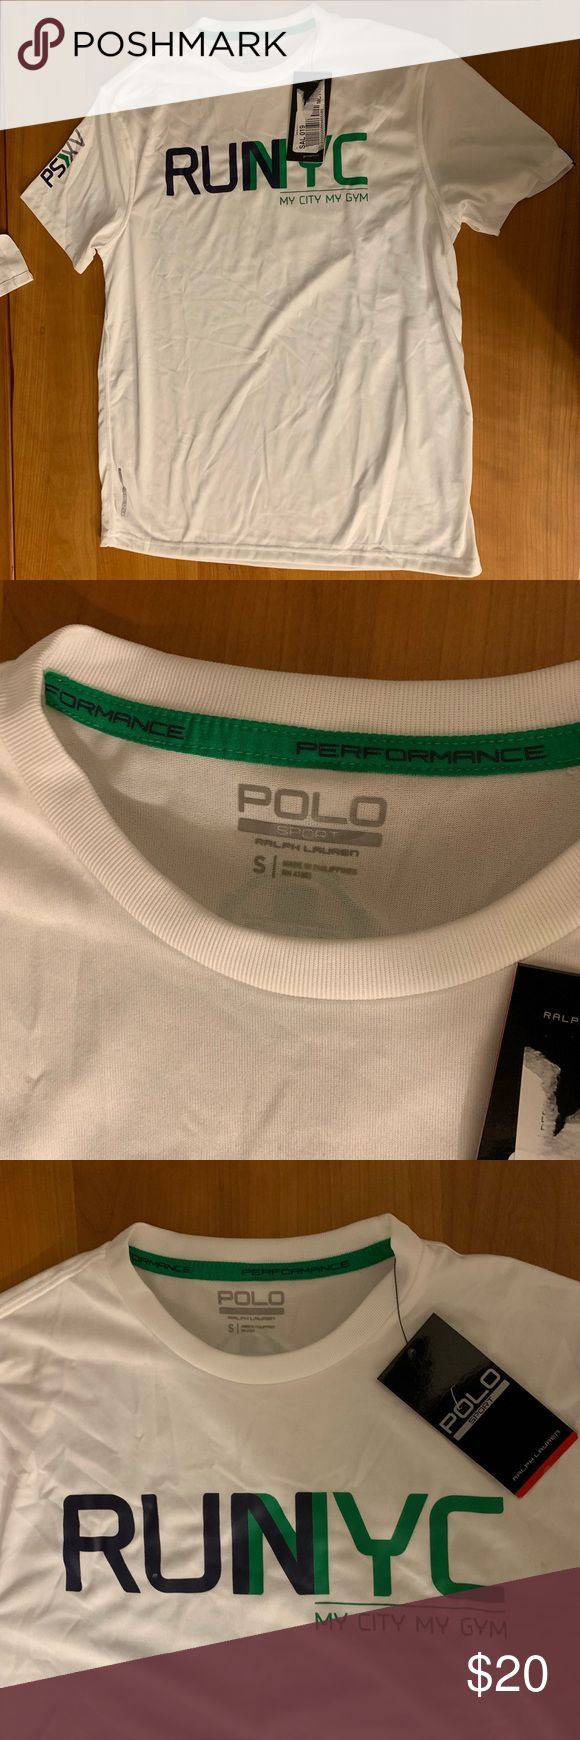 Polo Sport Run NYC The clothes are new with tags and were